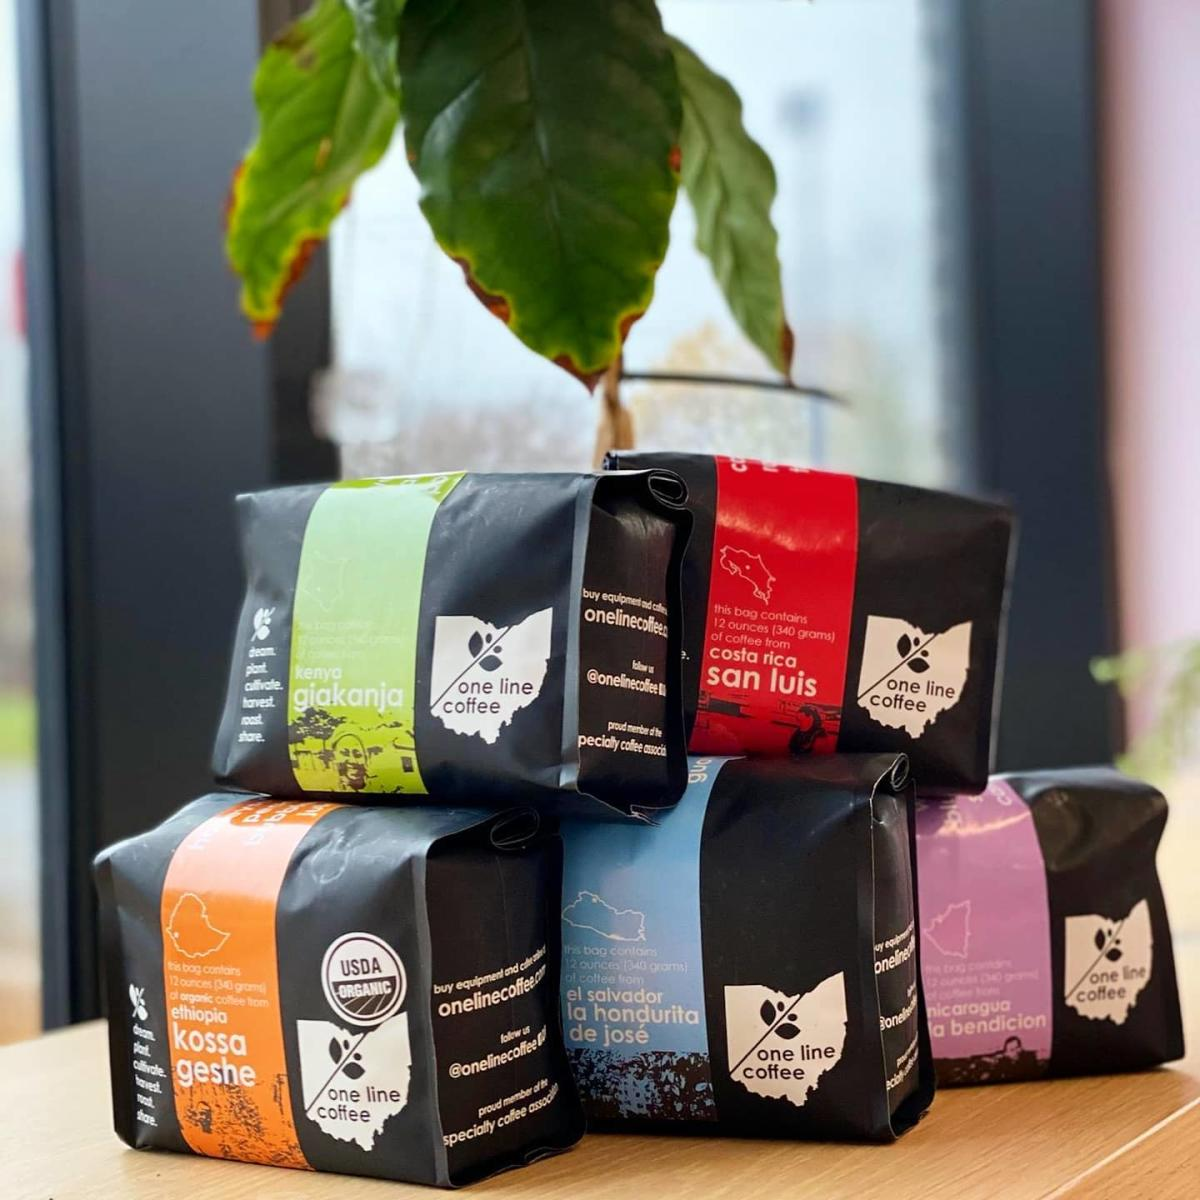 Coffee bags from One Line